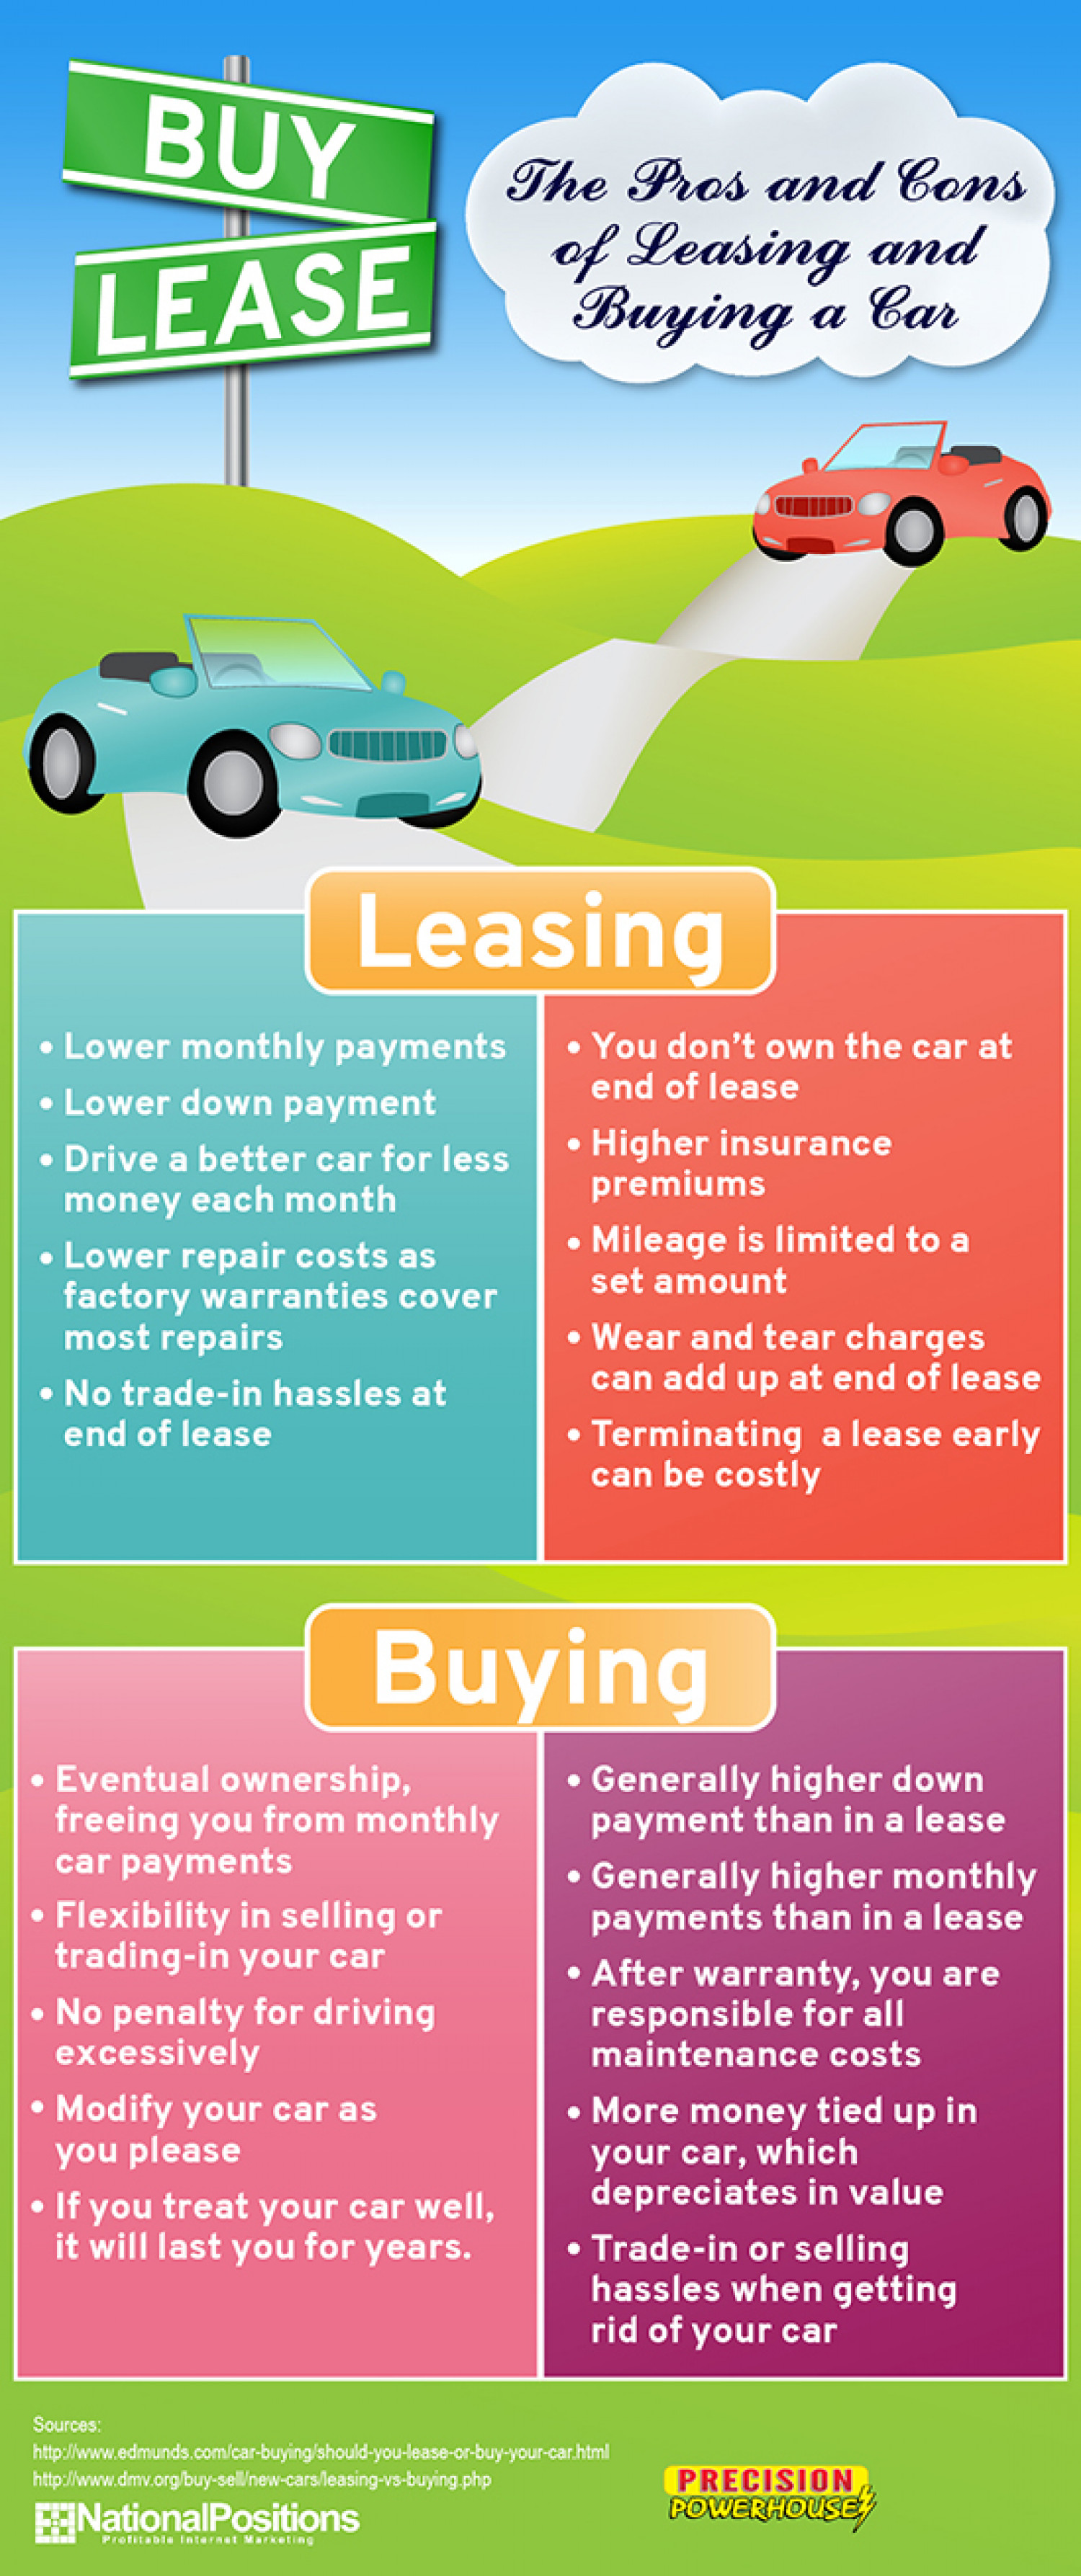 Pros And Cons Of Leasing A Car For Business